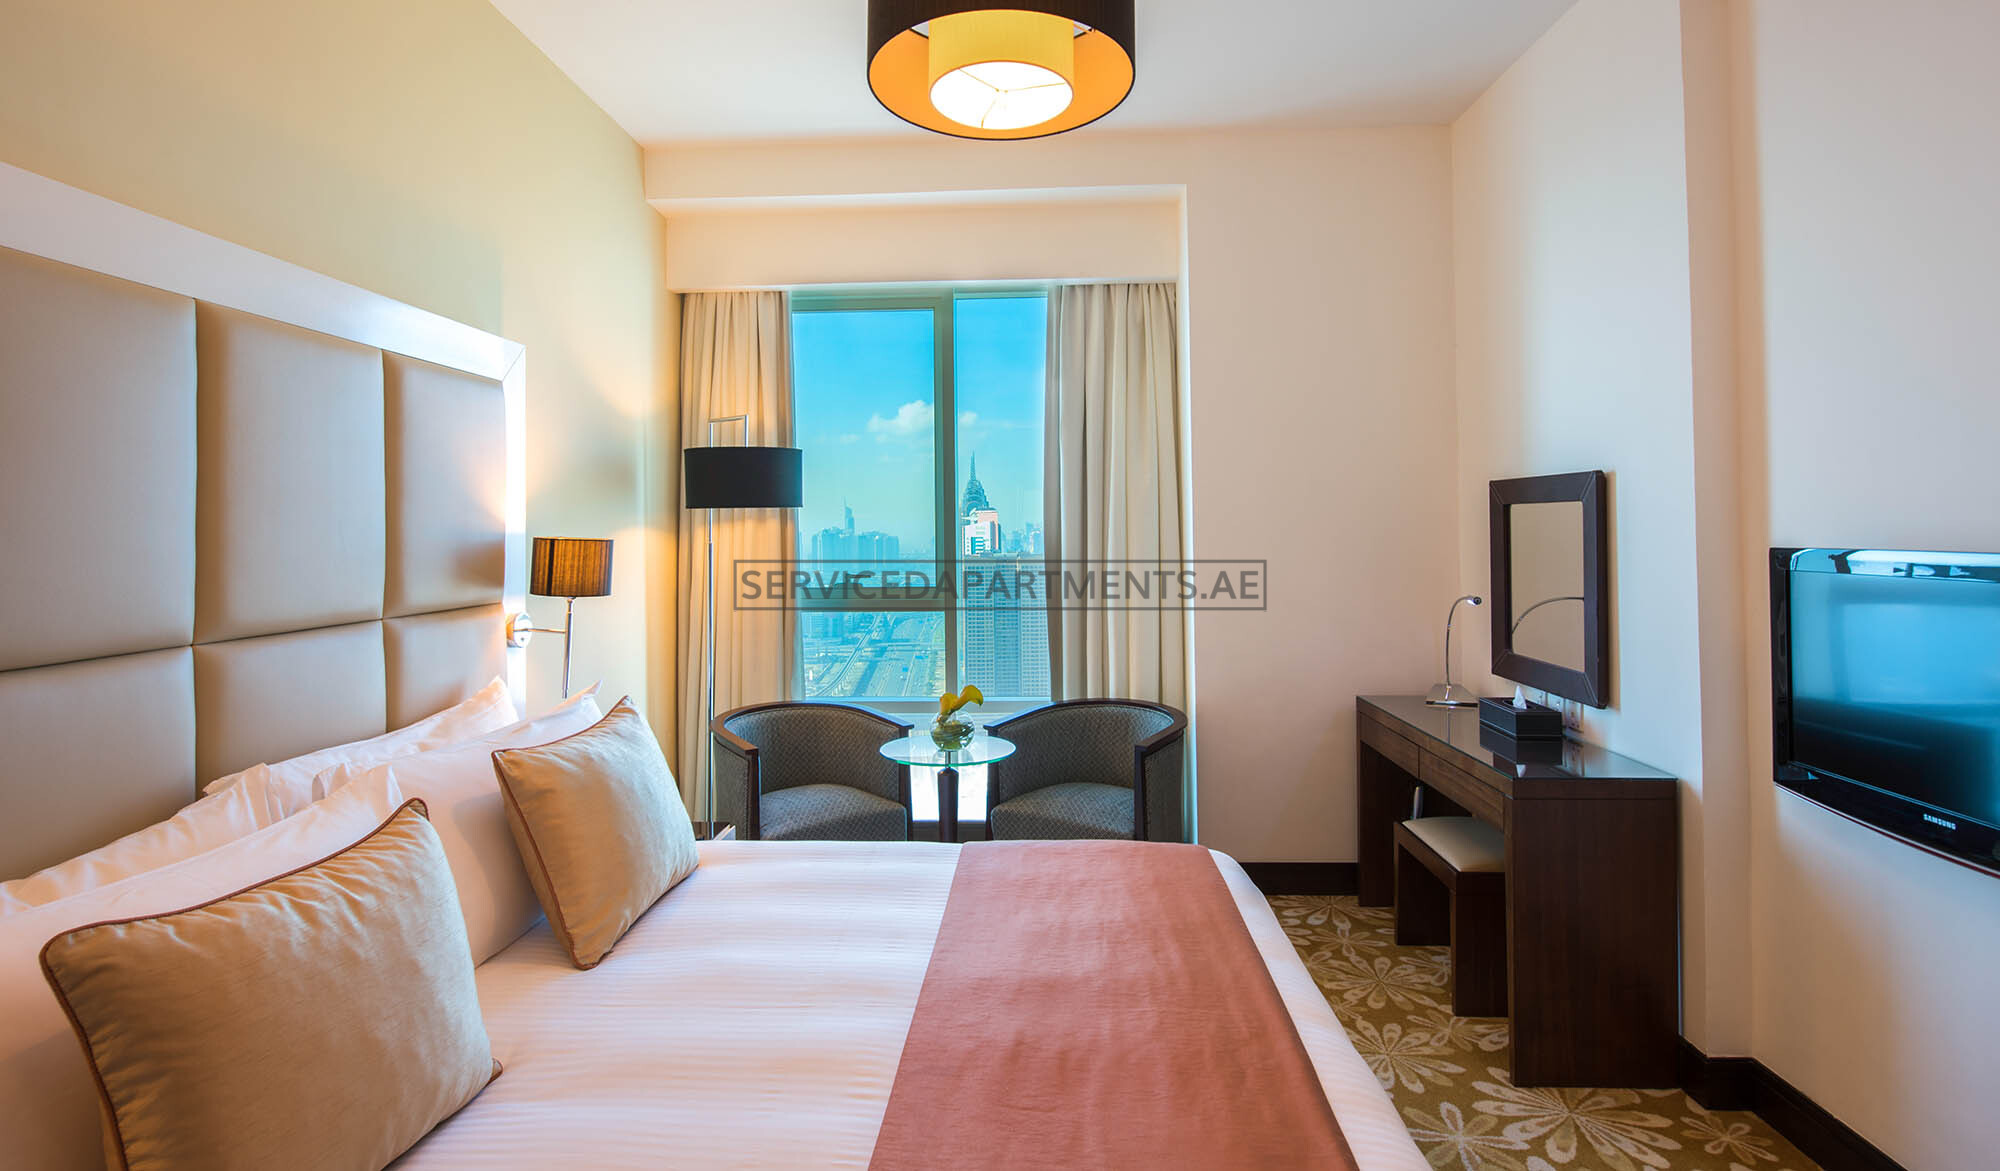 2 Bedroom Serviced Hotel Apartments for Rent in Dubai